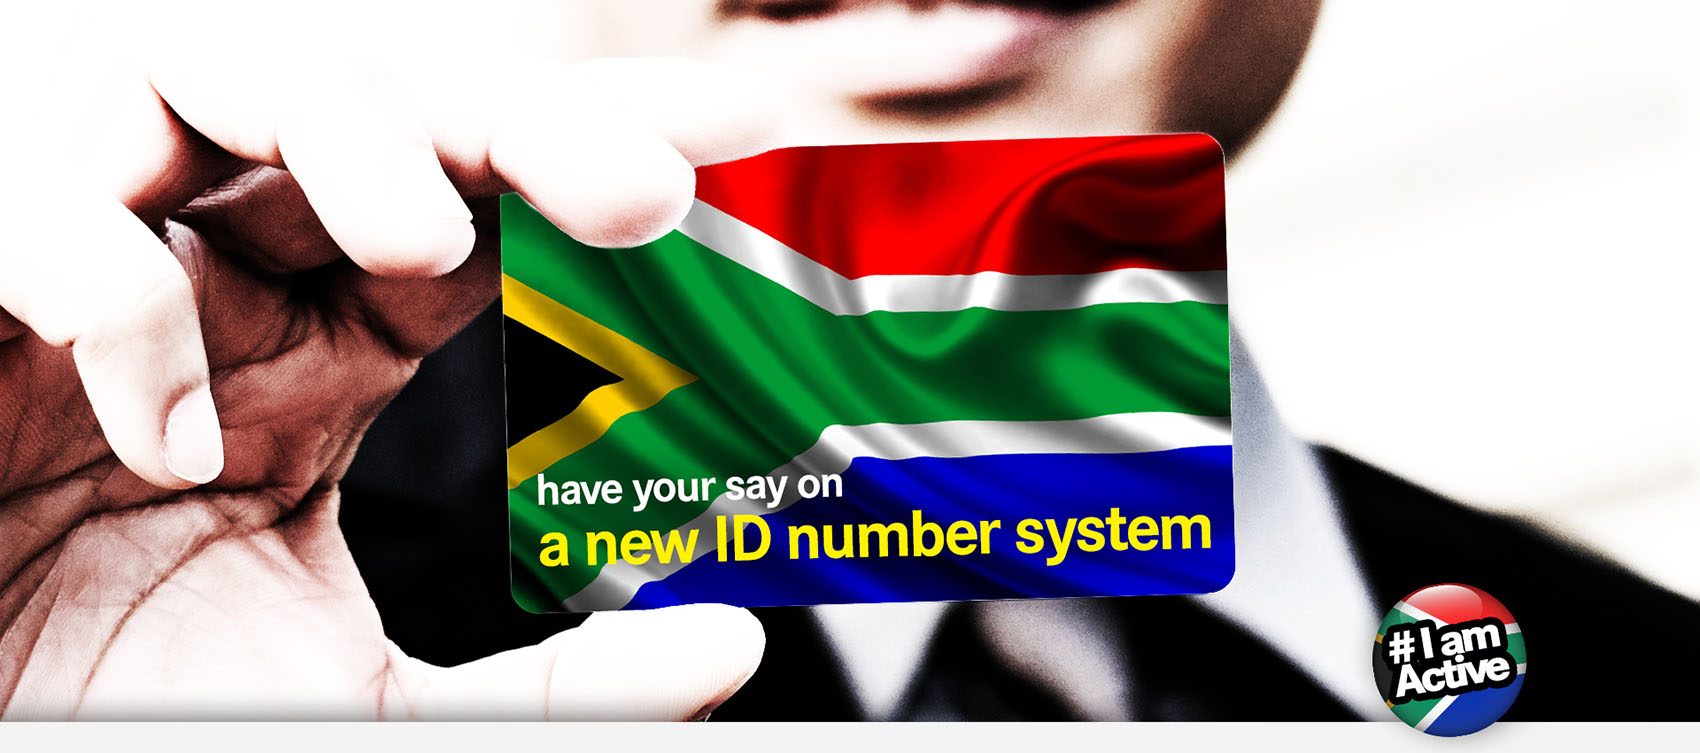 DearSA-new-ID-number-system